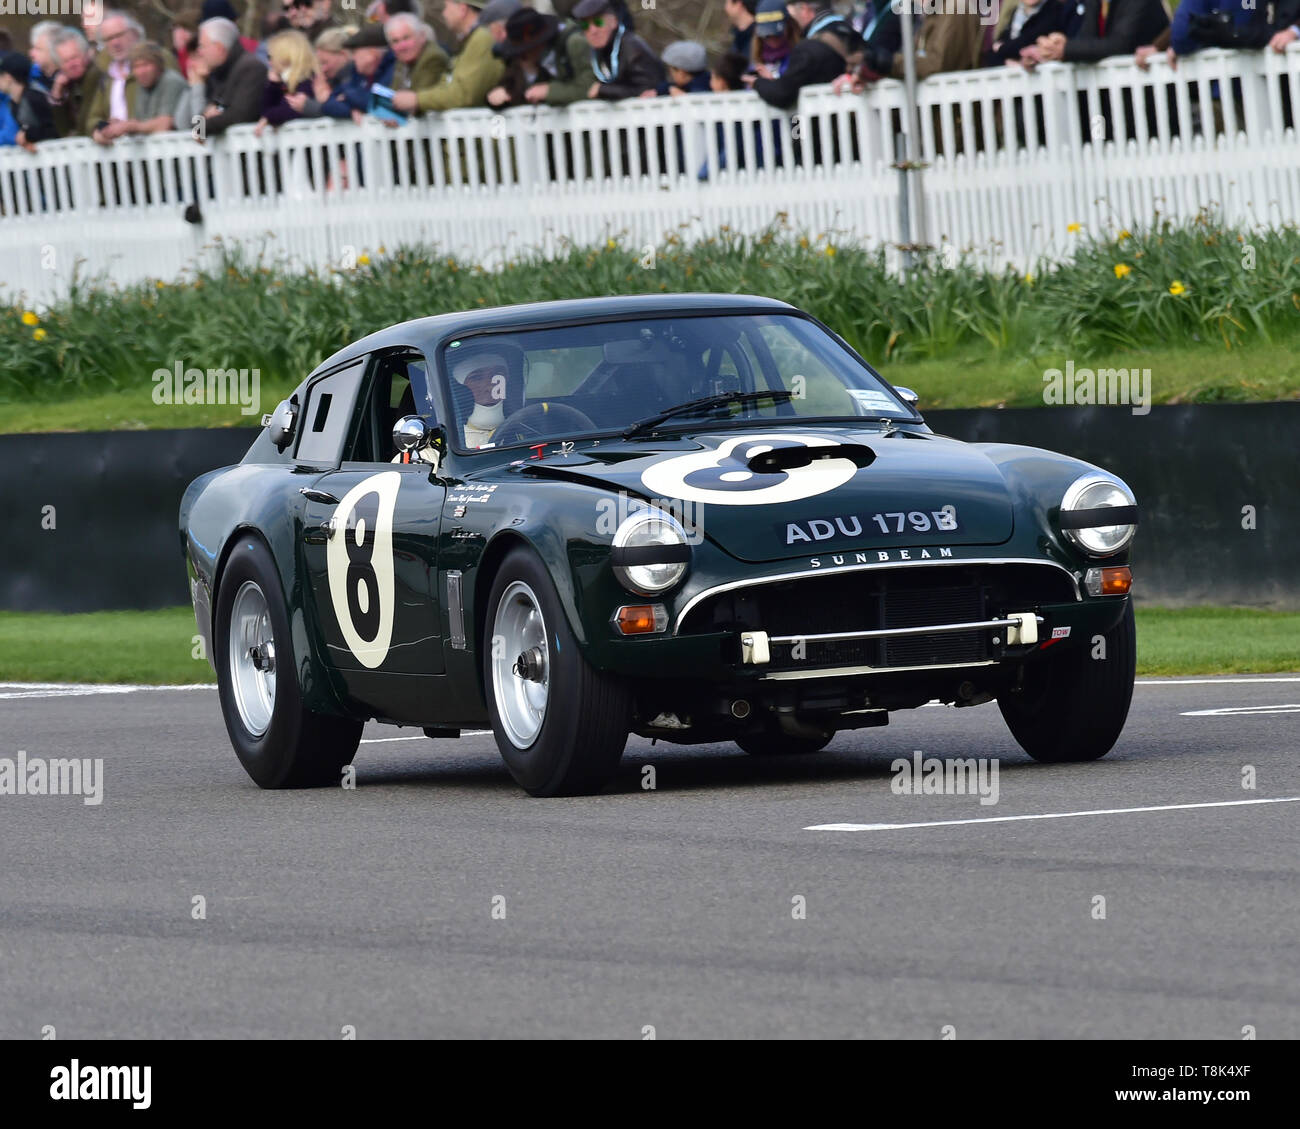 Nigel Greensall, Chris Beighton, Sunbeam Lister Tiger, Graham Hill Trophy, Closed cockpit GT cars, Prototype cars, Spirit of the RAC TT Races 1960-196 - Stock Image